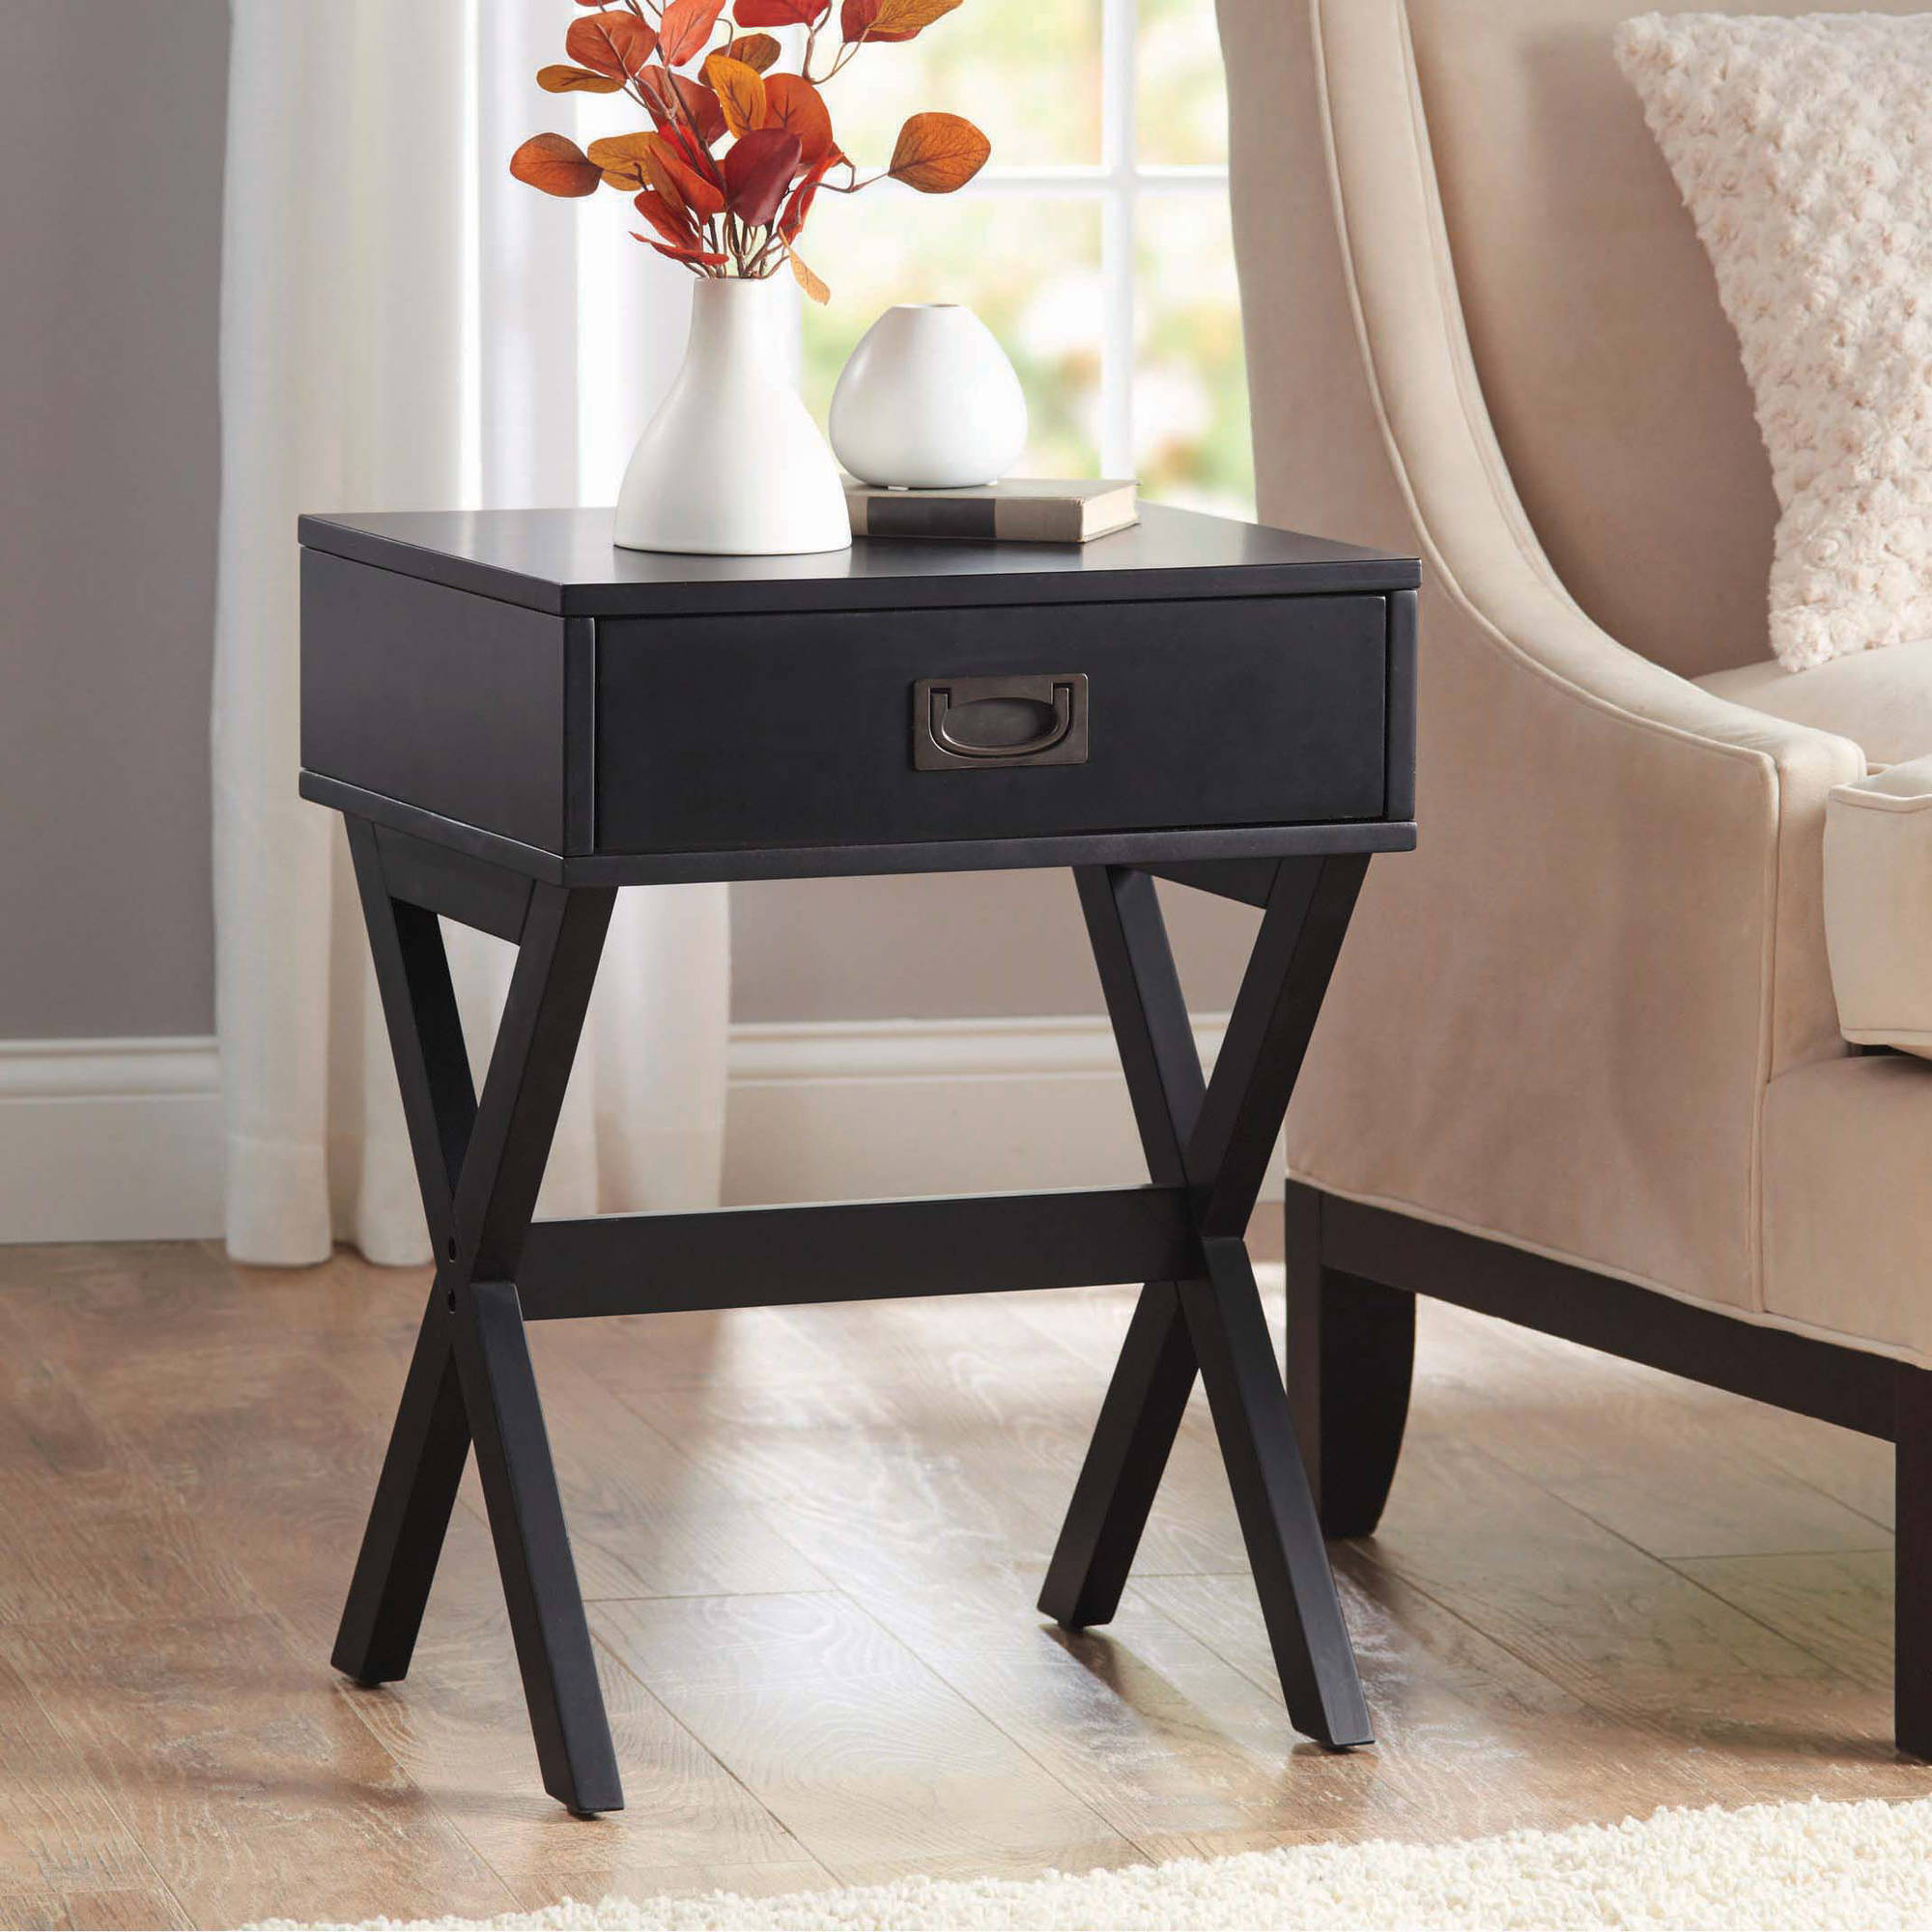 better homes gardens leg accent table with drawer multiple colors high end tables hampton bay spring haven pottery barn hammock mirrored side unit narrow sofa behind couch